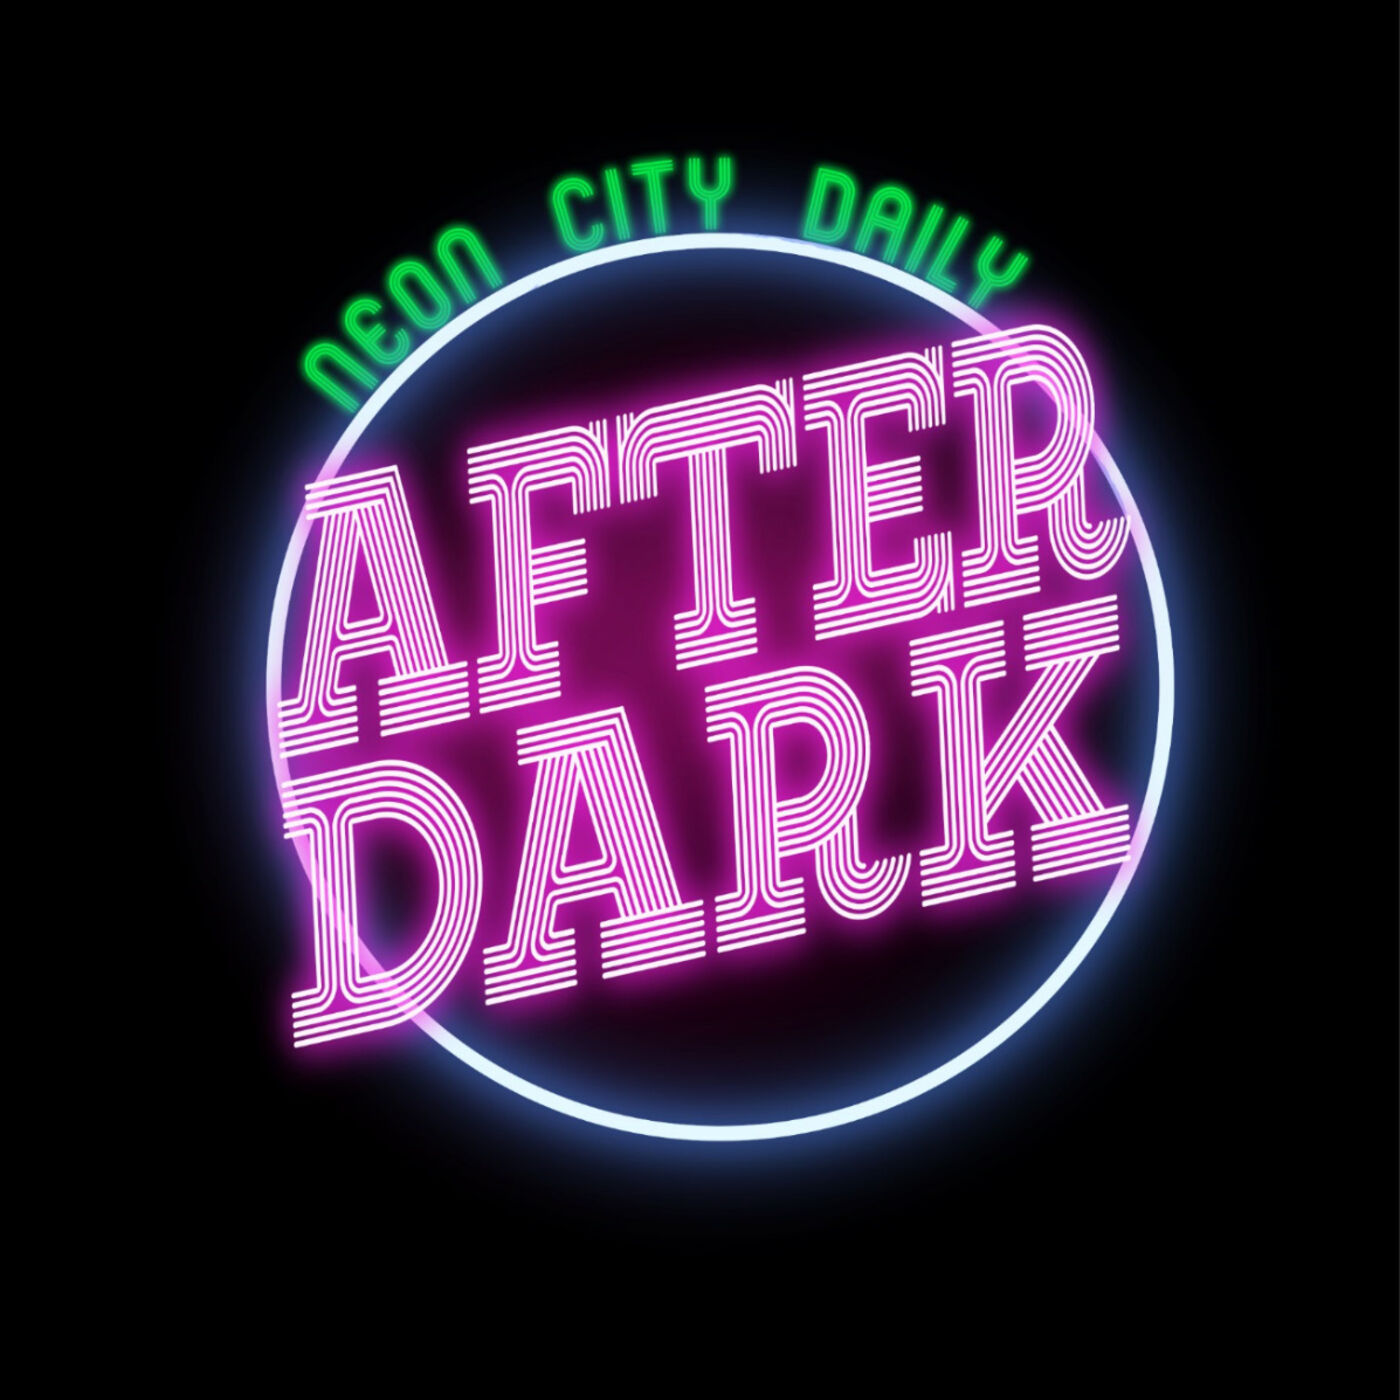 Neon City Daily After Dark: Episode Nine